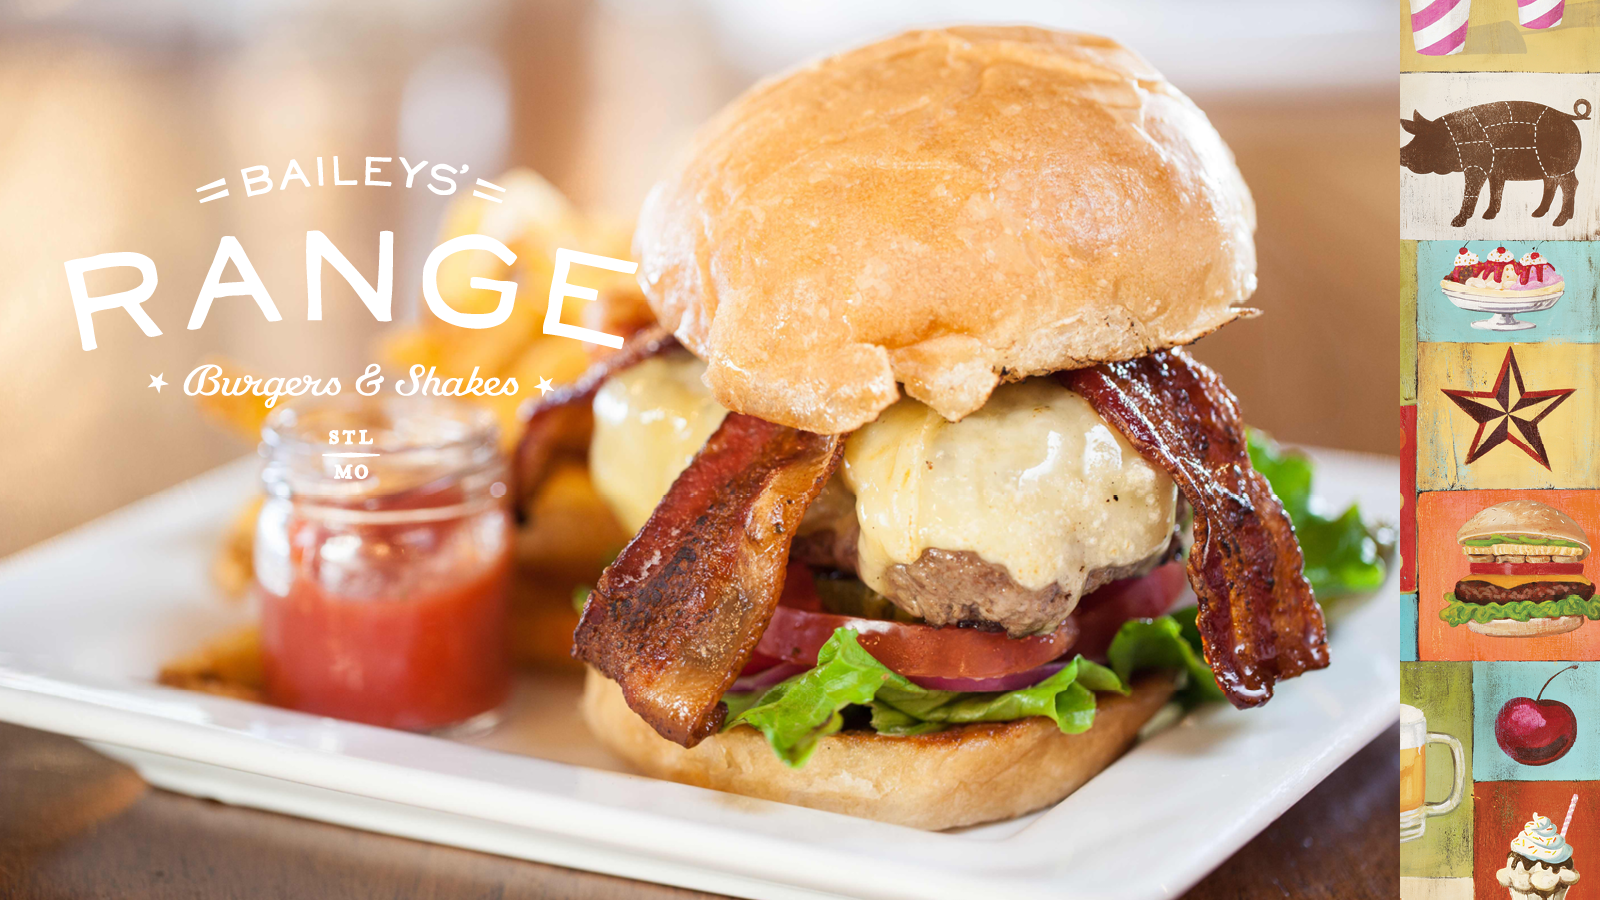 Baileys' Range Burger with Logo and Branding